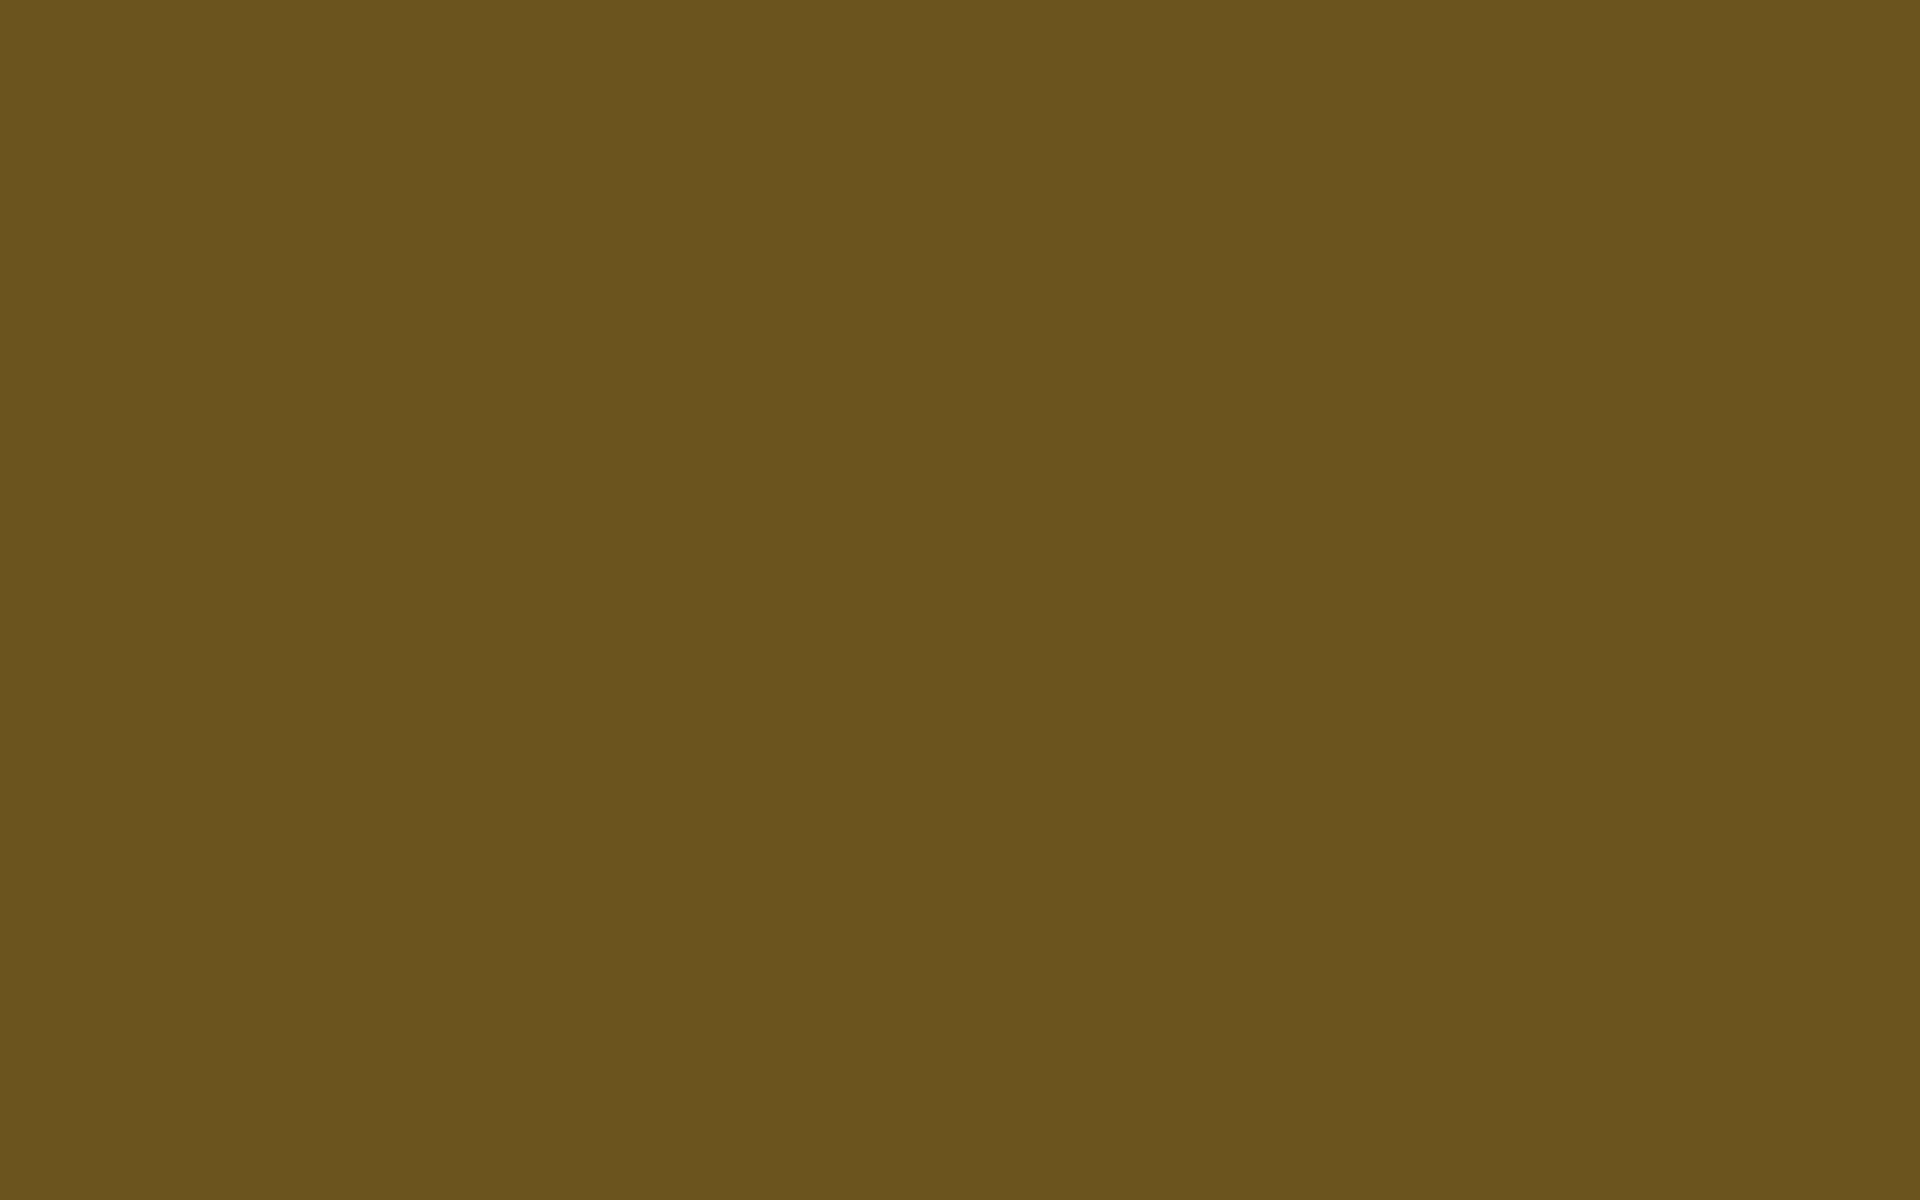 1920x1200 Field Drab Solid Color Background